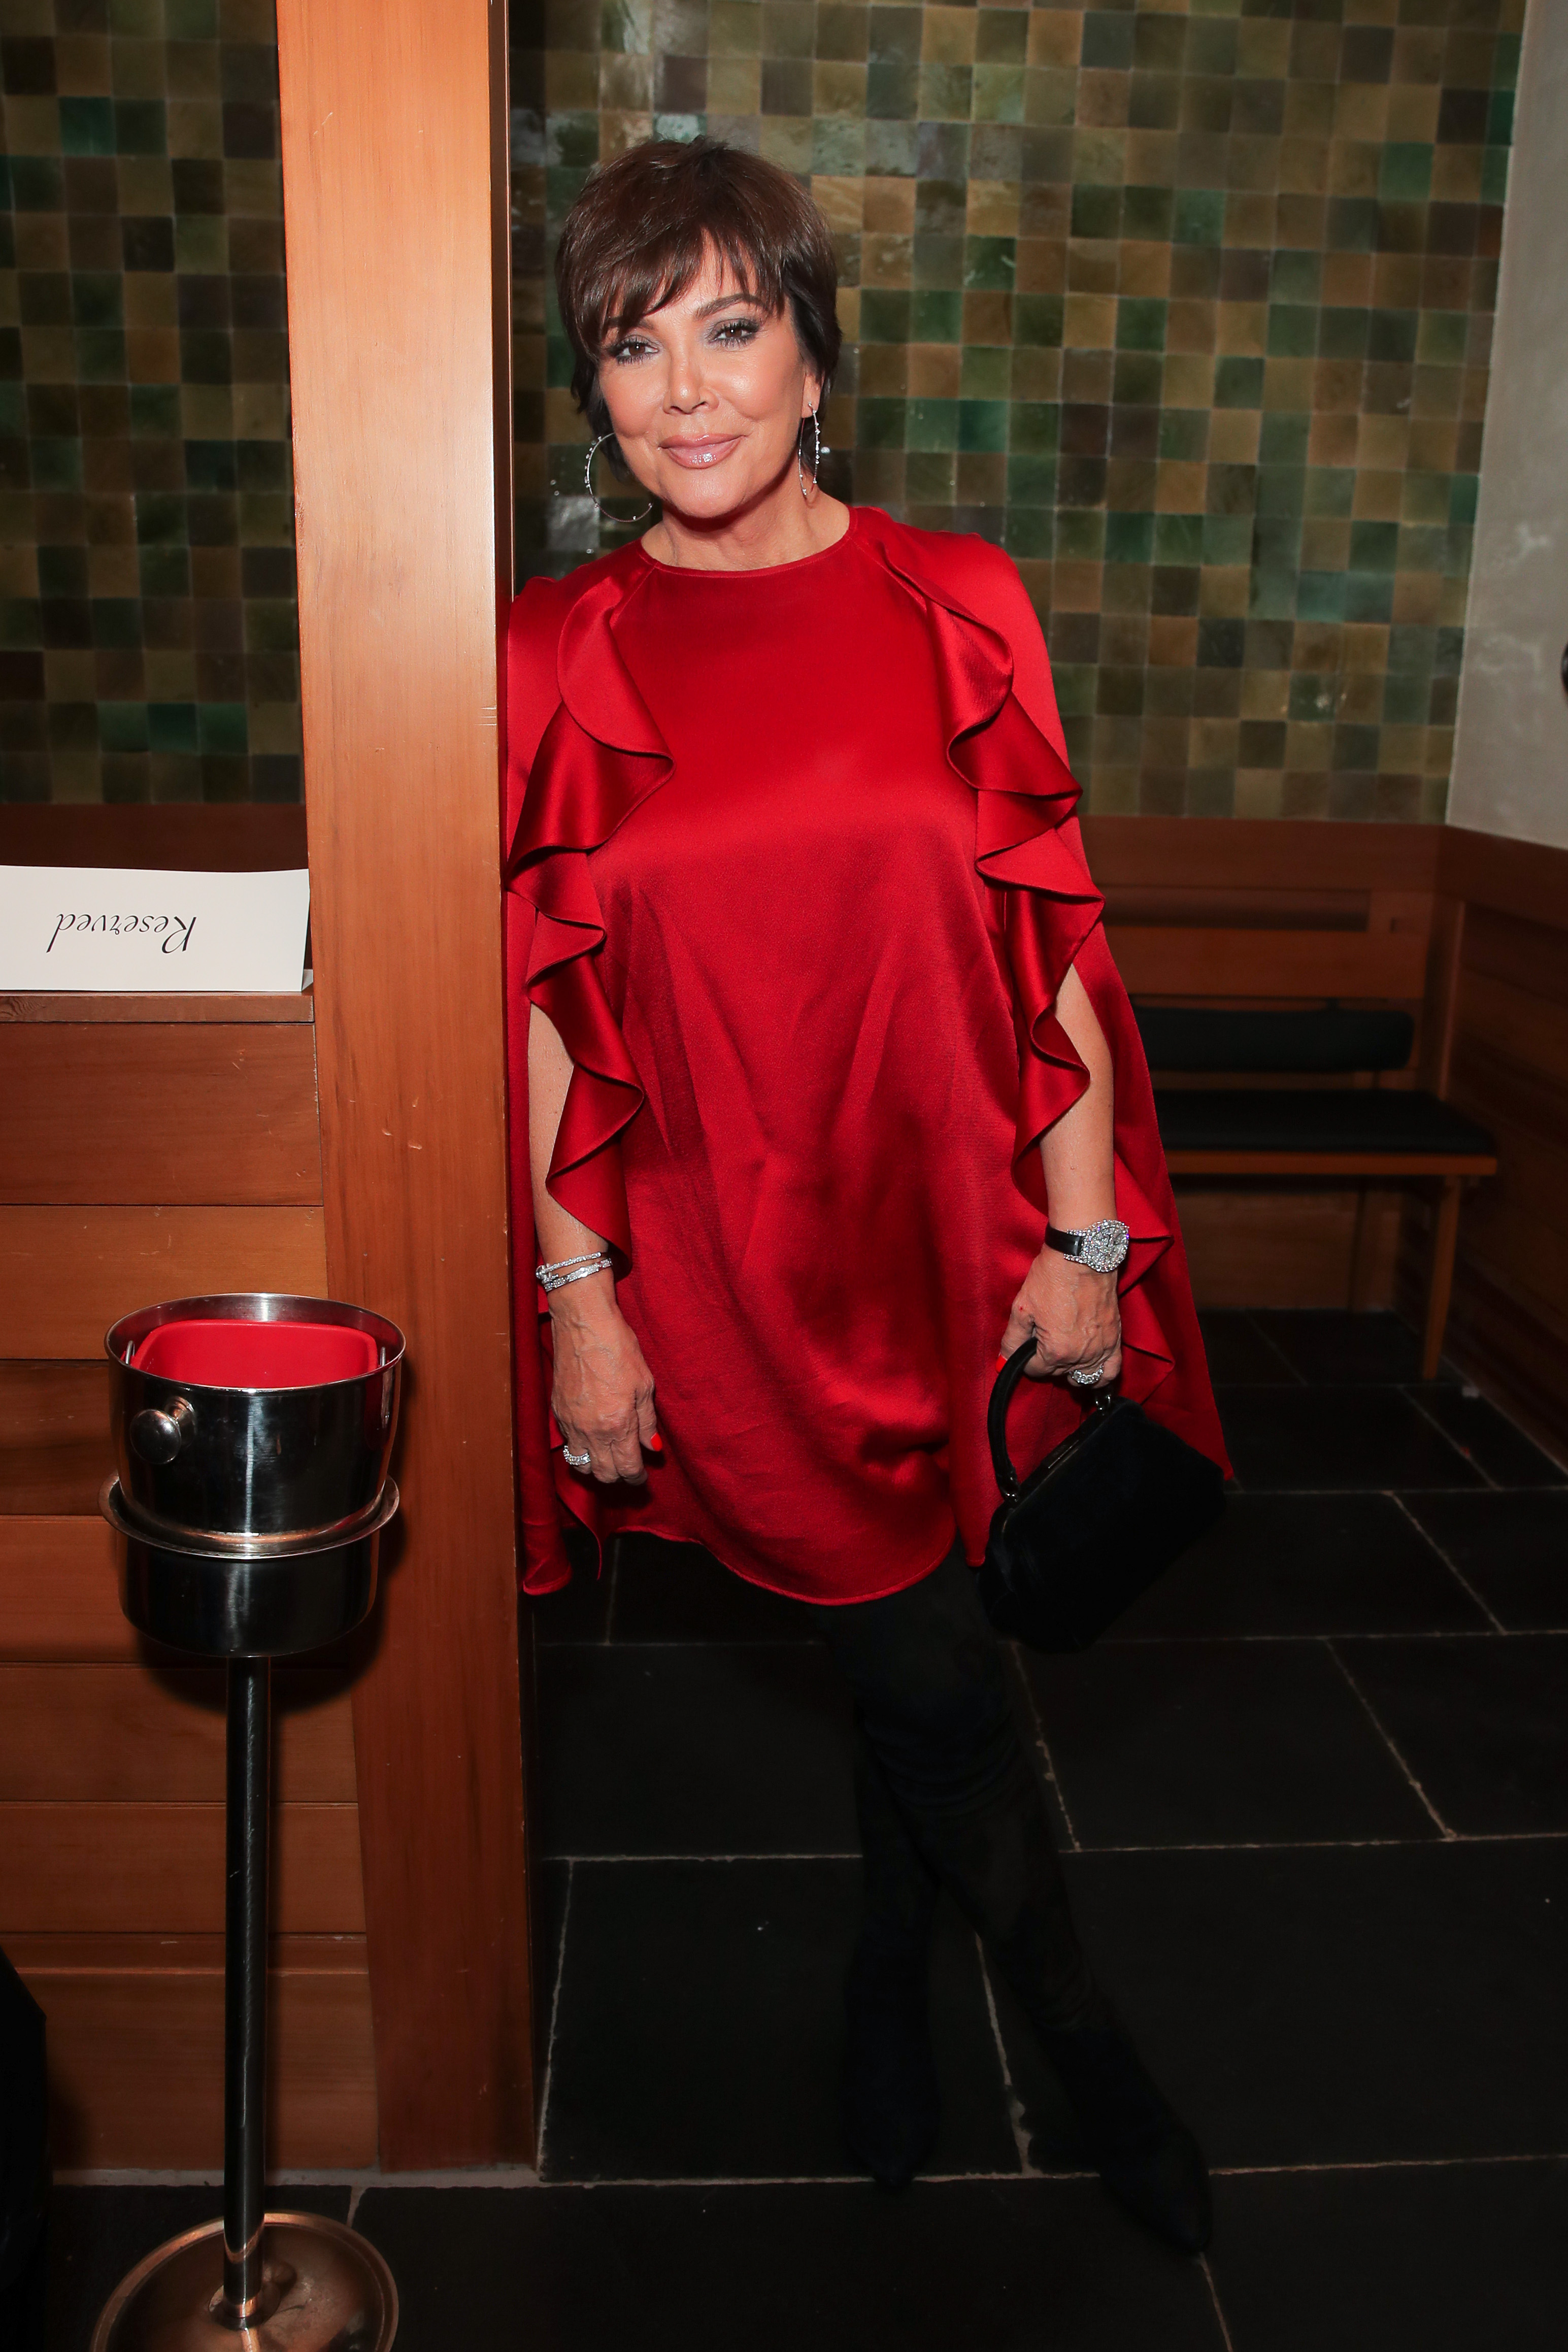 Kris Jenner Is 'Going All Out' for the Holidays: 'She Has a Team of Elves and Decorating Assistants'